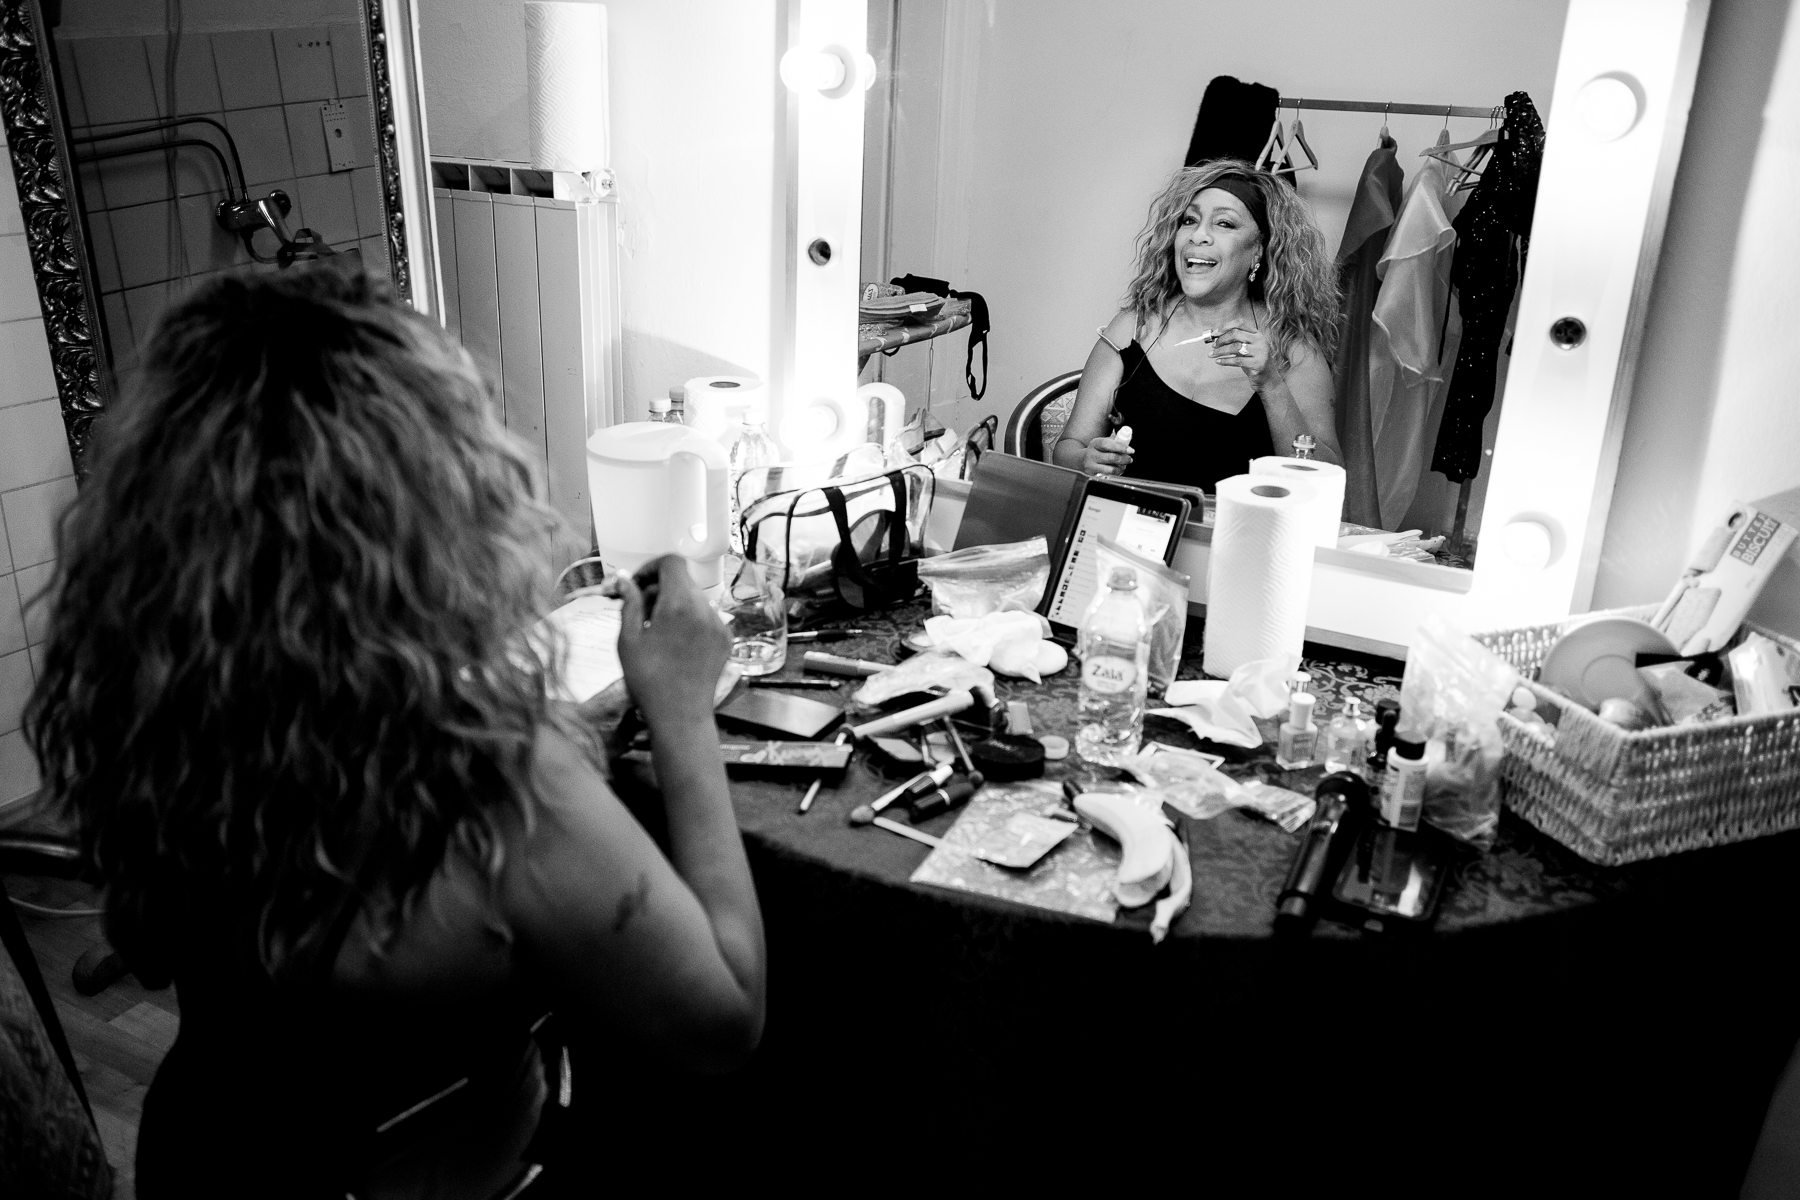 Mary Wilson of the Supremes applying makeup backstage before the concert in Maribor, Slovenia, February 4, 2020.